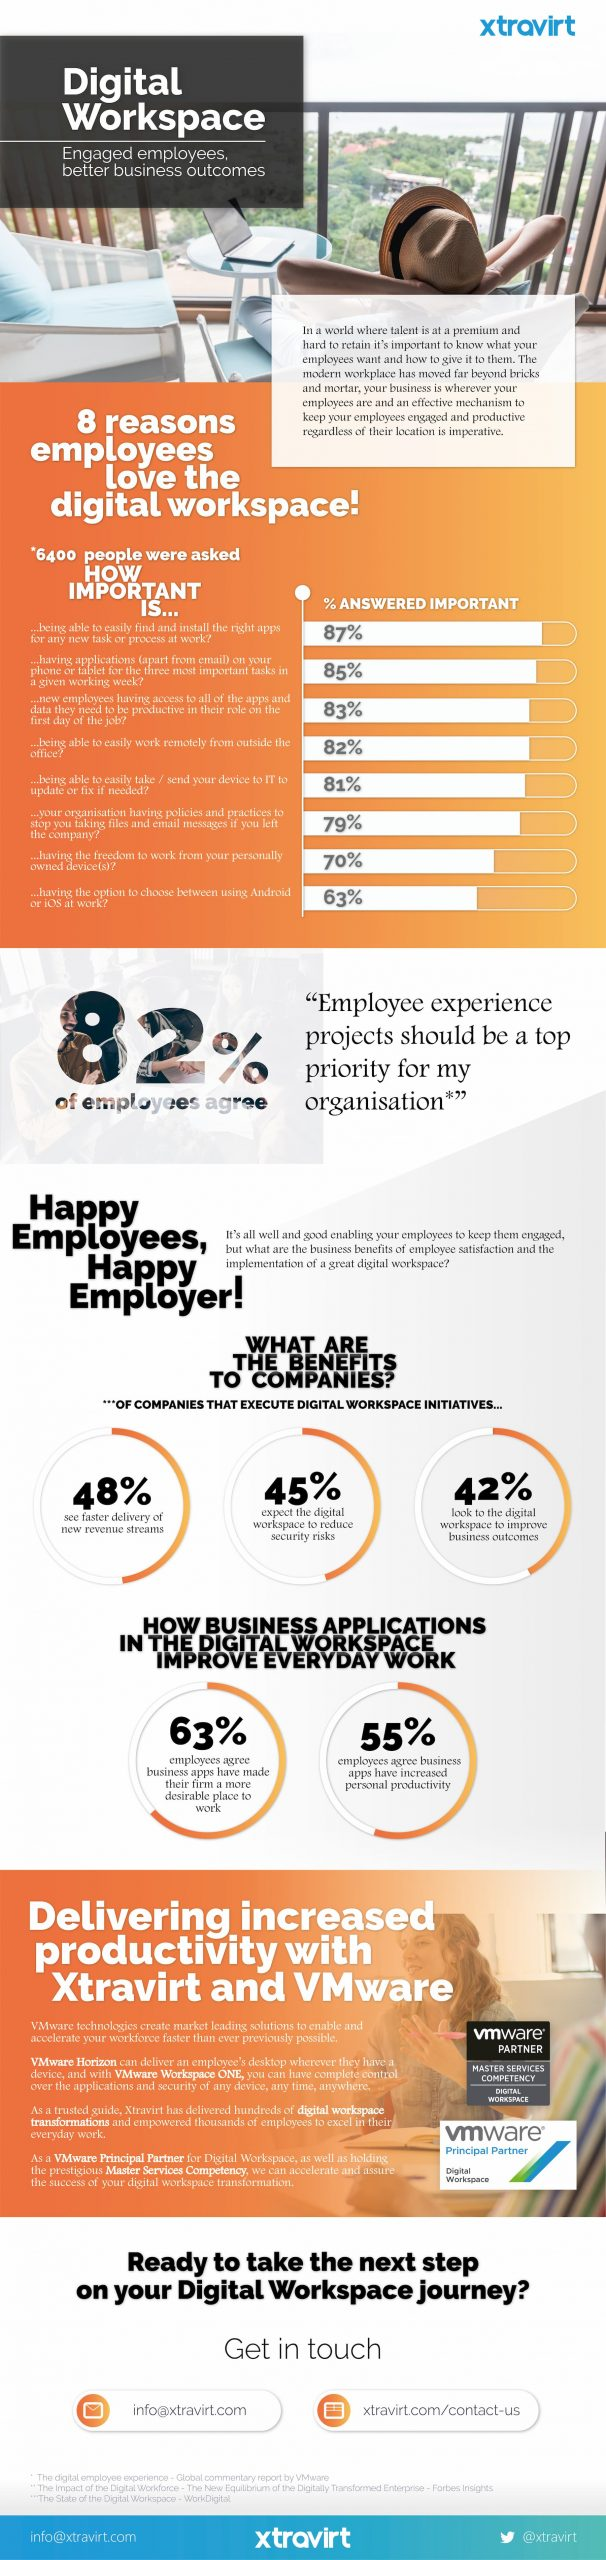 Digital Workspace - Engaged employees better business outcomes